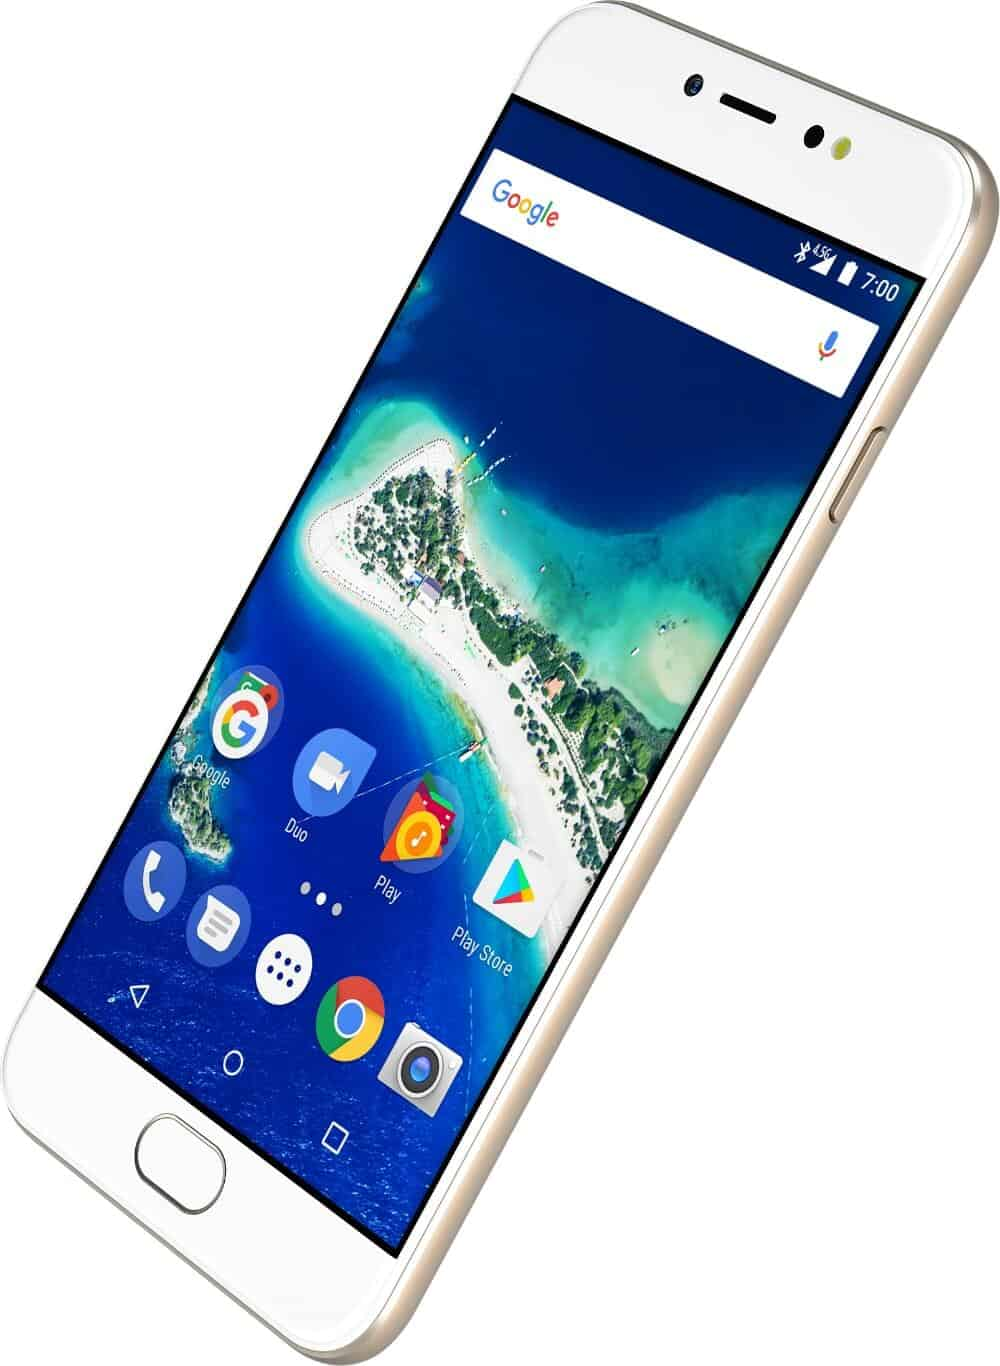 GM 6 Android One 12